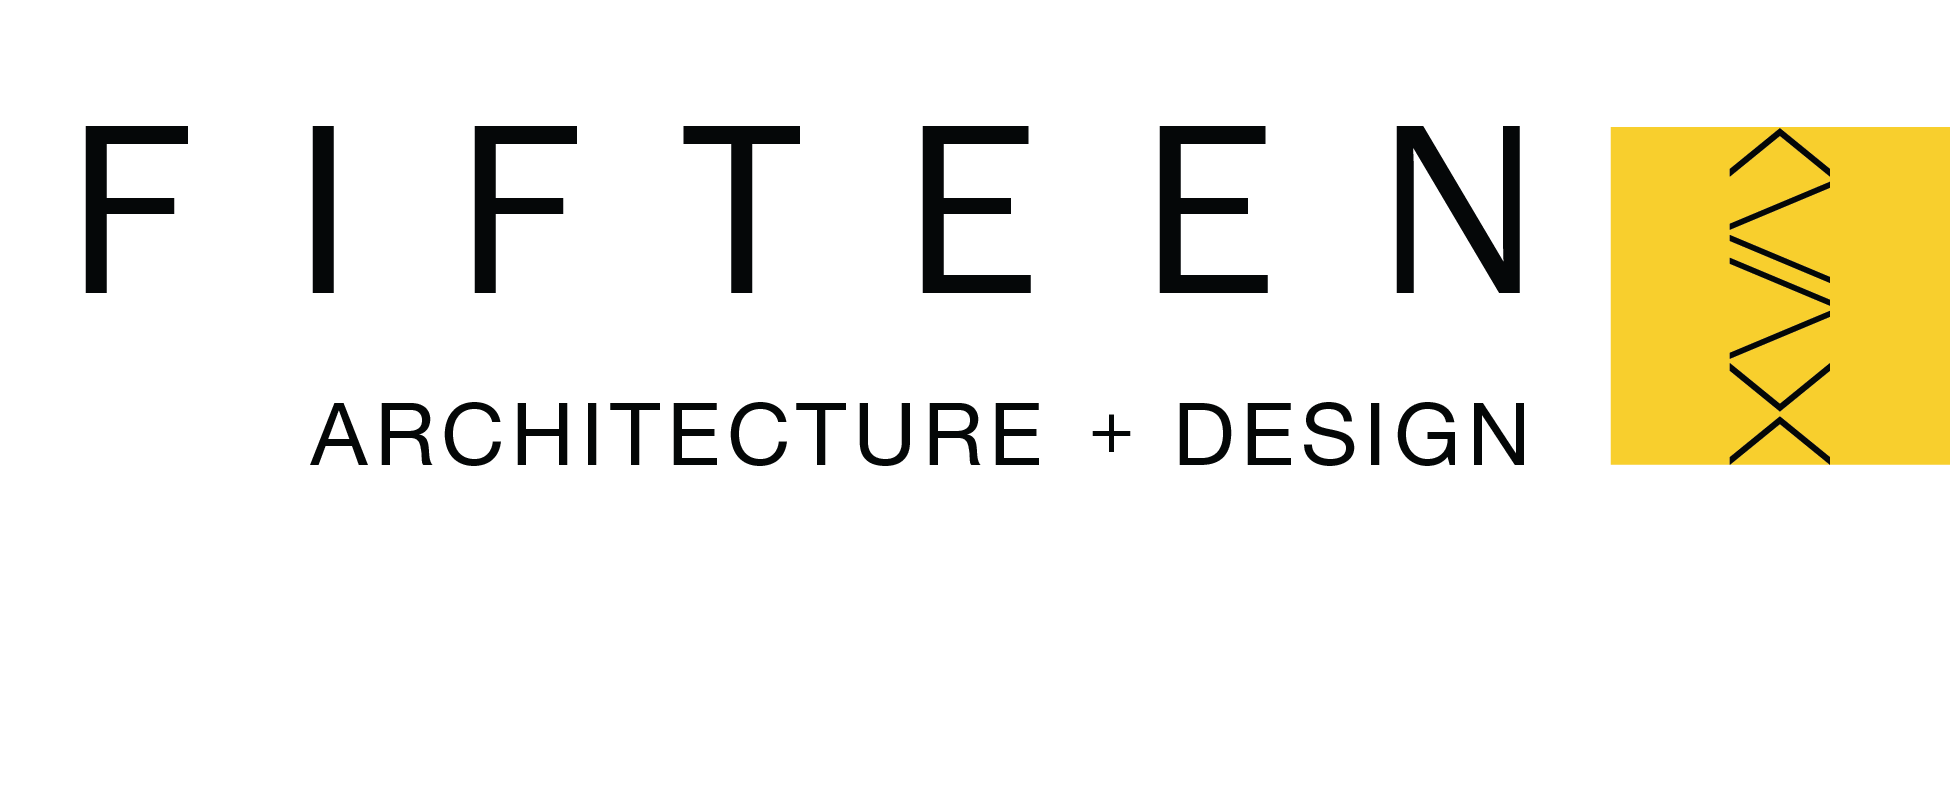 FIFTEEN AD LOGO with xvad.png